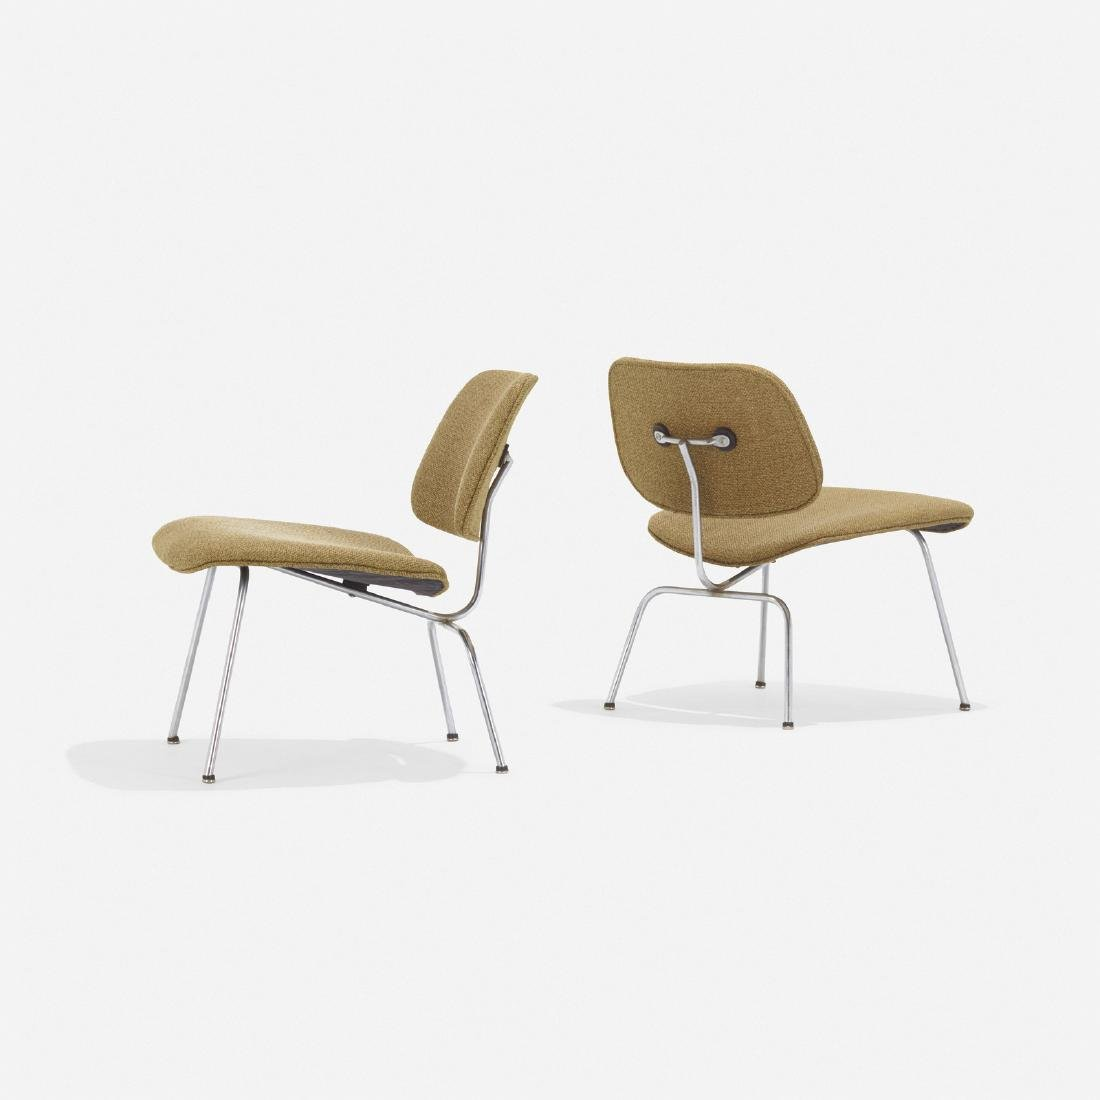 Charles and Ray Eames, LCMs, pair